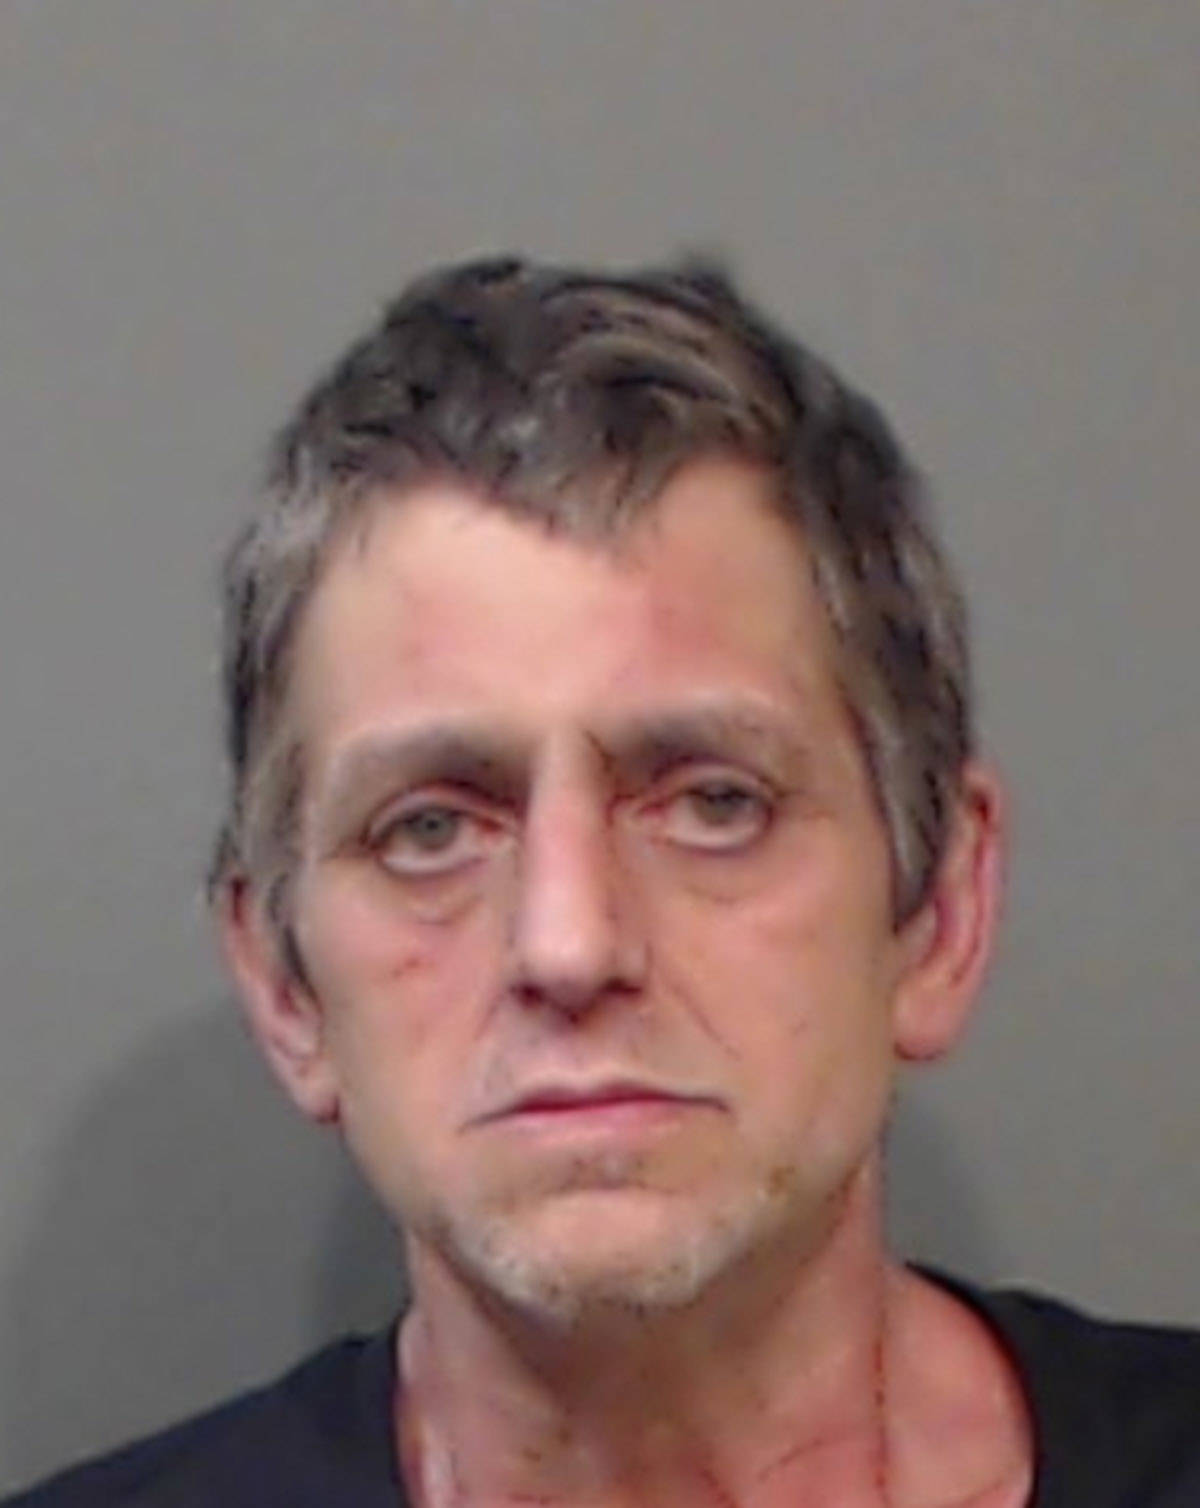 """Name: RUDOLPH, Gerald Age: 52 Height: 5'8"""" ft Weight: 201 lbs Hair: Brown Eyes: Blue Wanted: Breach of Undertaking or Recognizance Warrant in effect: July 6, 2021 Parole Jurisdiction: Chilliwack, BC"""